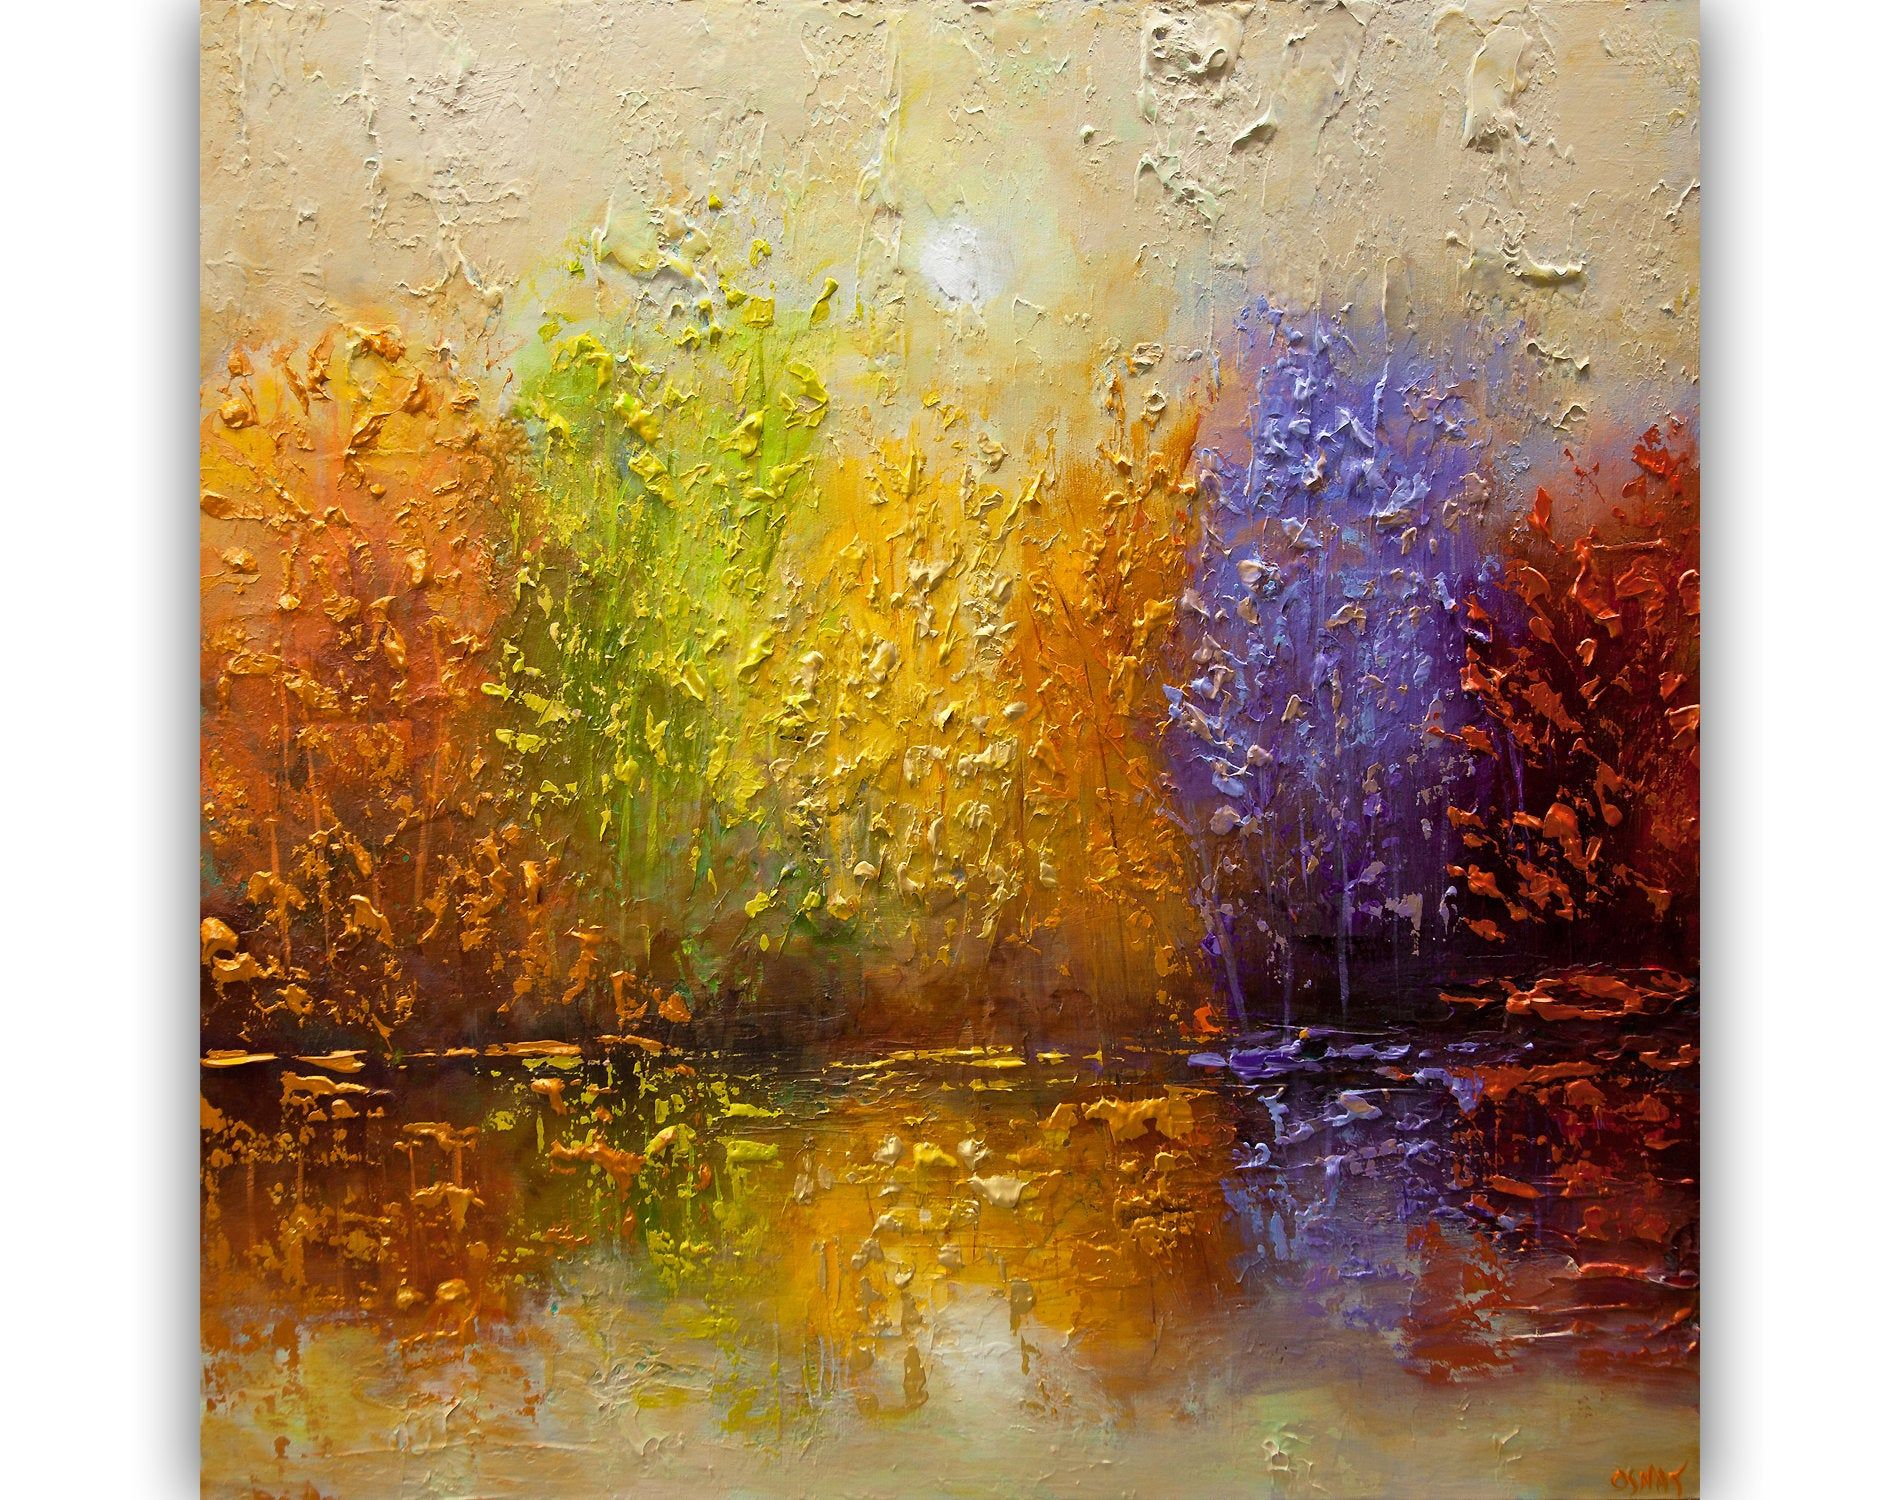 Modern Colorful Abstract Painting Textured Blooming Trees Painting Colorful Forest Wall Art Large Landscape Painting By Osnat In 2020 Large Landscape Painting Colorful Abstract Painting Forest Wall Art